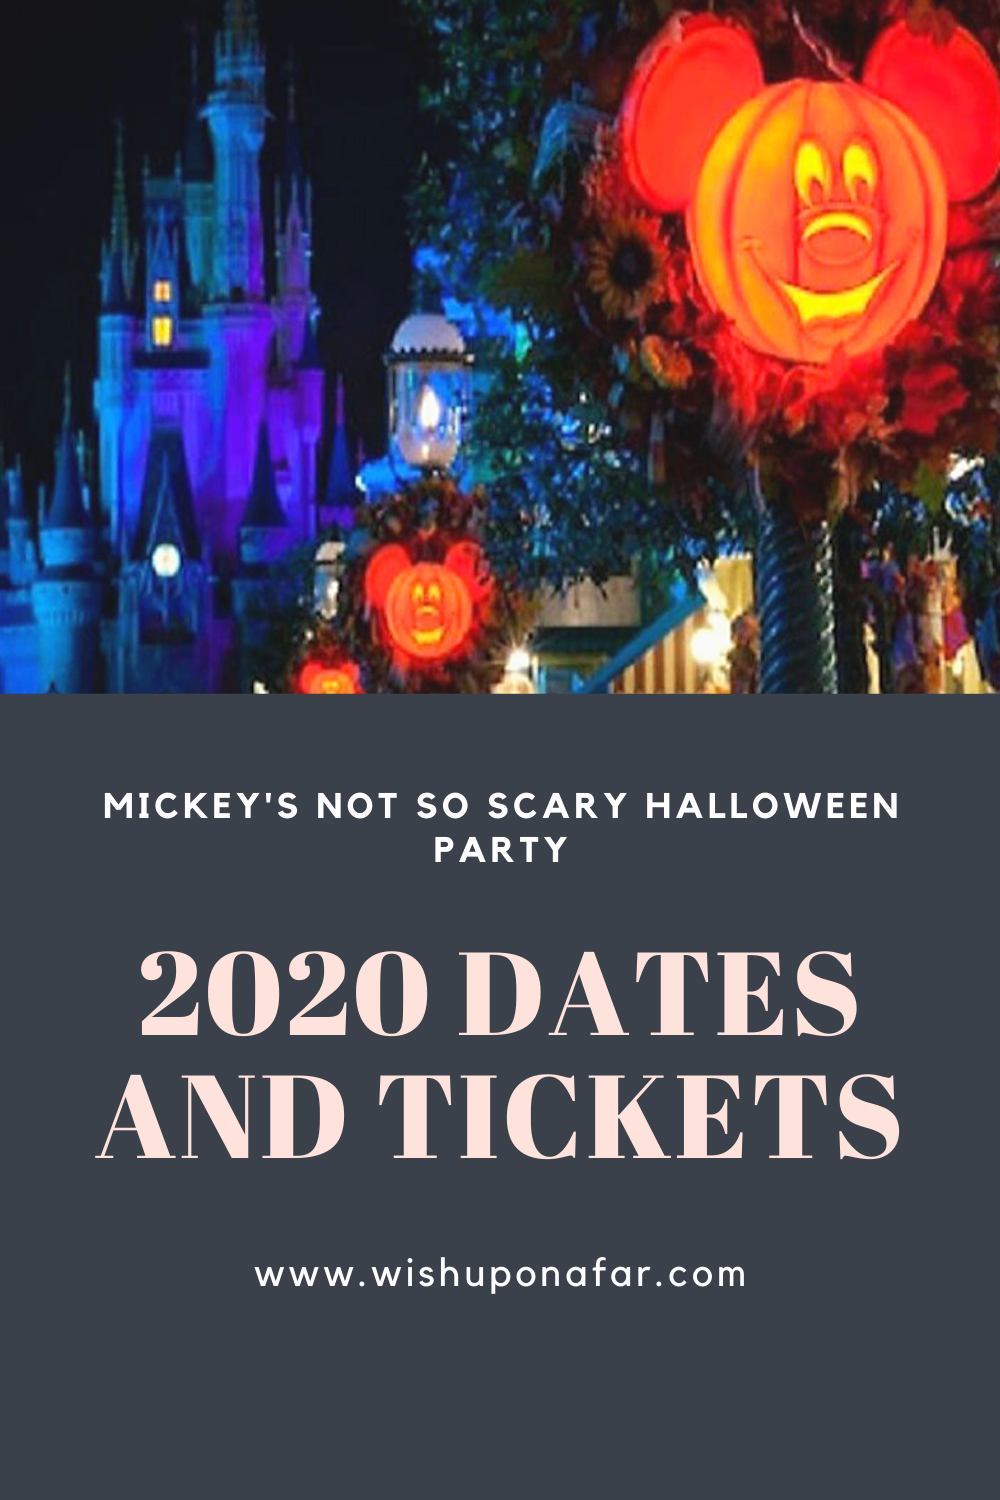 When Is Halloween 2020 Being Released 2020 Mickey's Not So Scary Halloween Party in 2020 | Scary